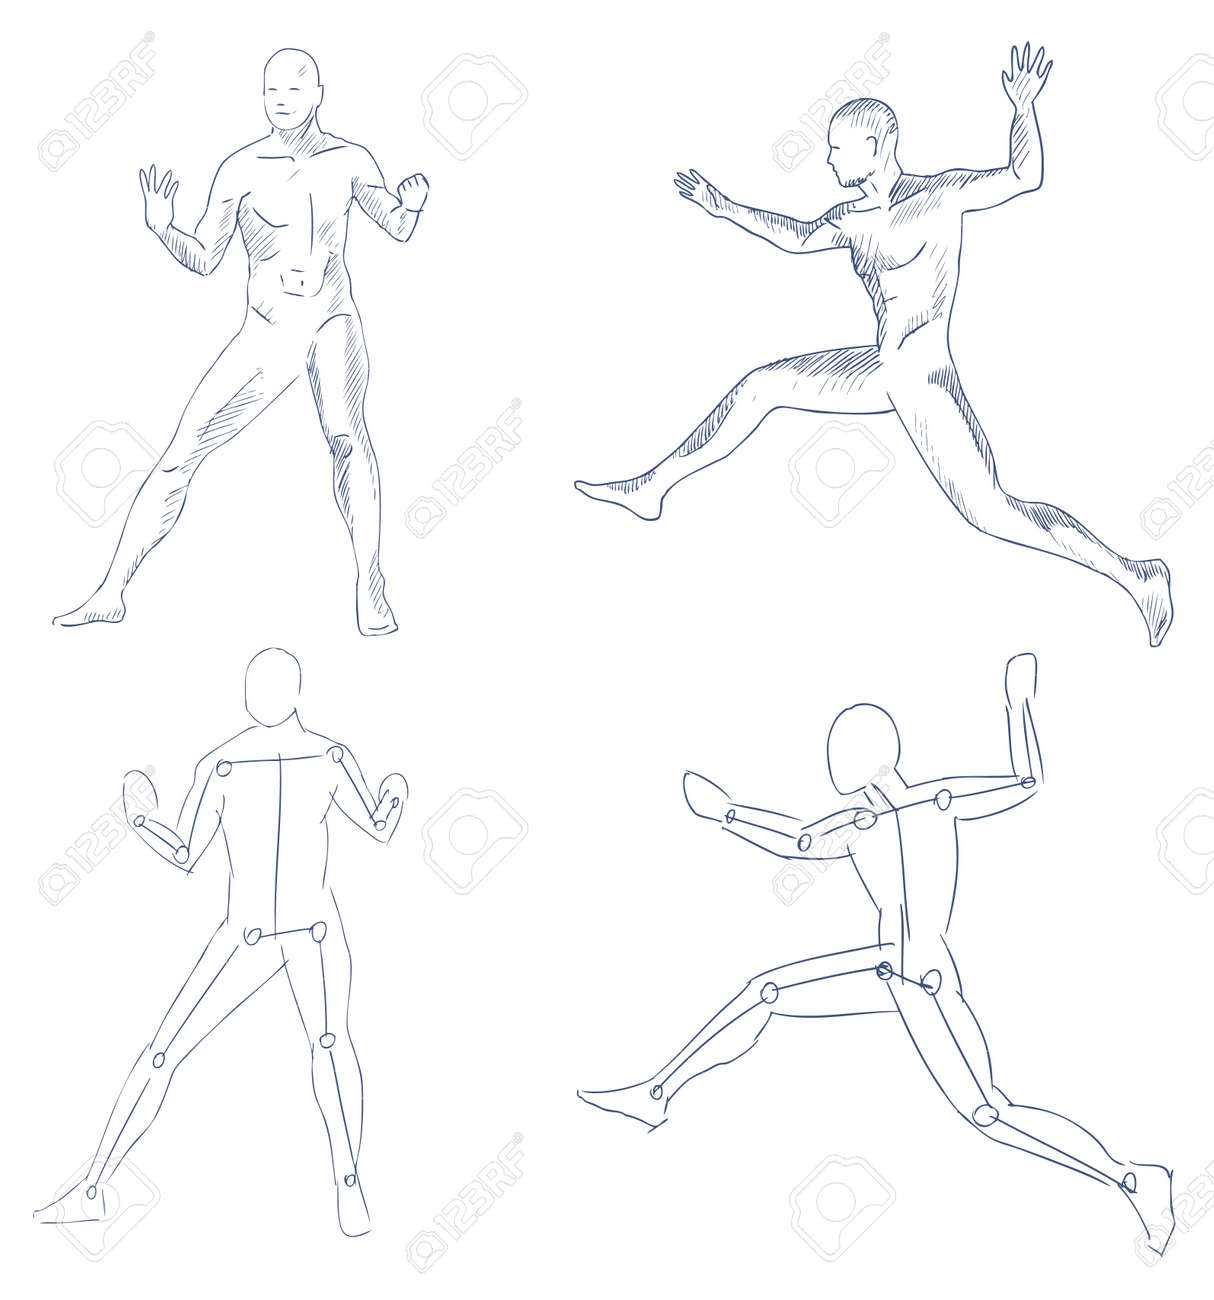 human in motion artistic sketch with shading vector Stock Vector - 10573778